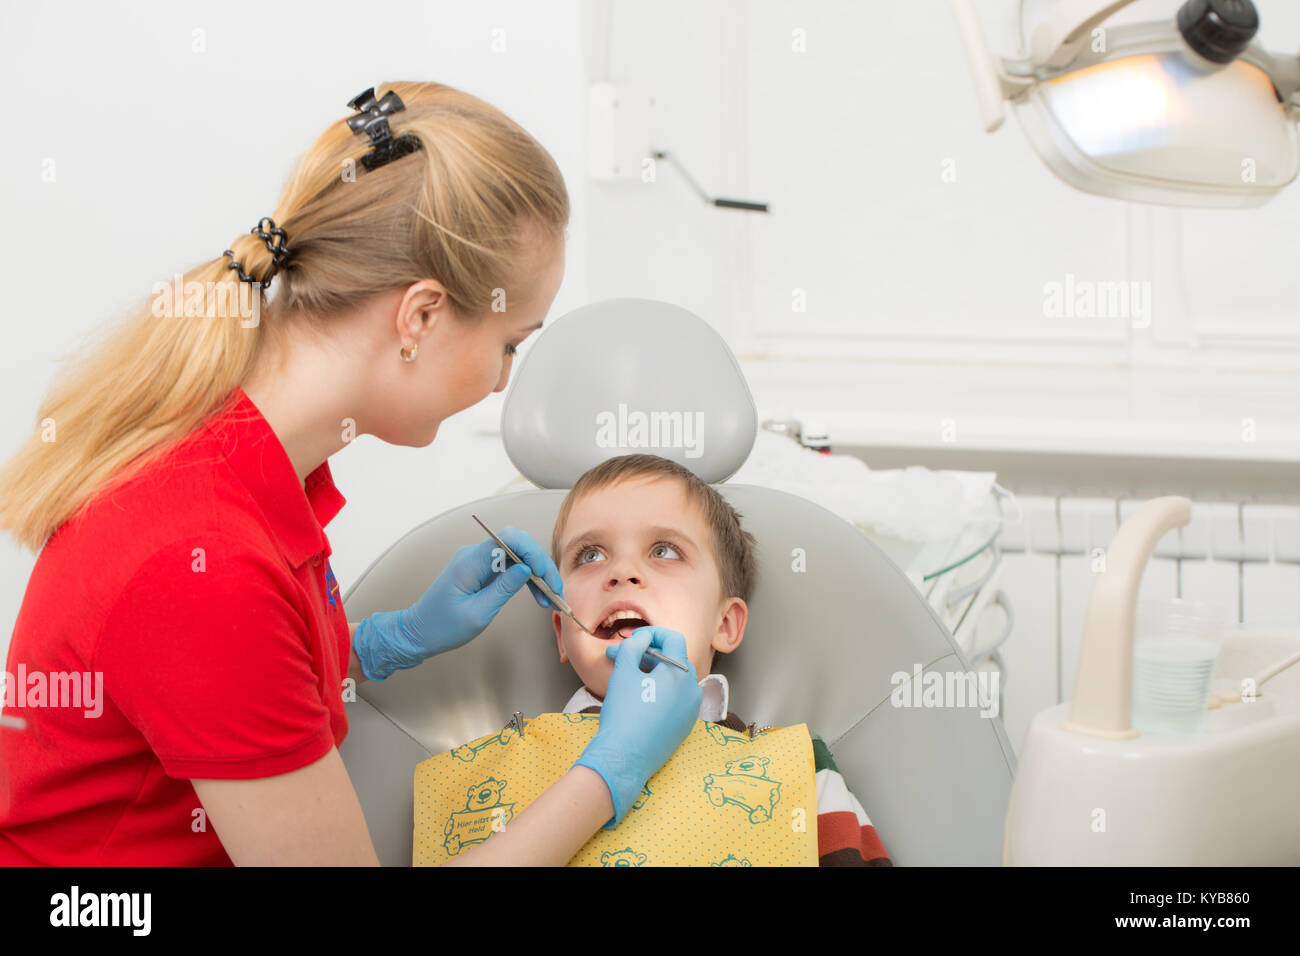 Female dentist examines the teeth of the patient child. Child mouth wide open in the dentist's chair. Close-up. Stock Photo